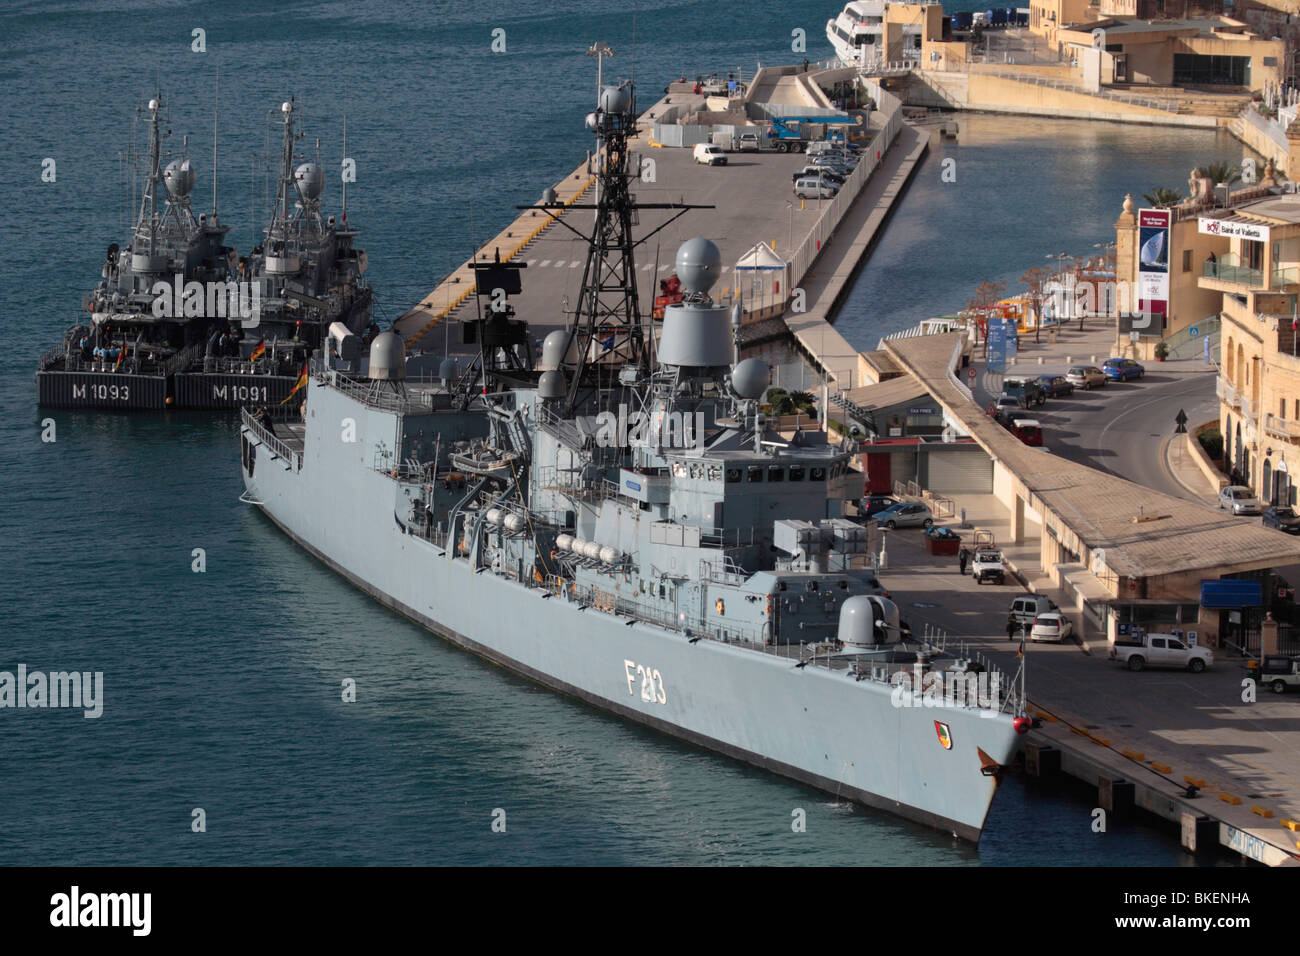 The frigate Augsburg and two minesweepers of the German Navy in Malta's Grand Harbour - Stock Image